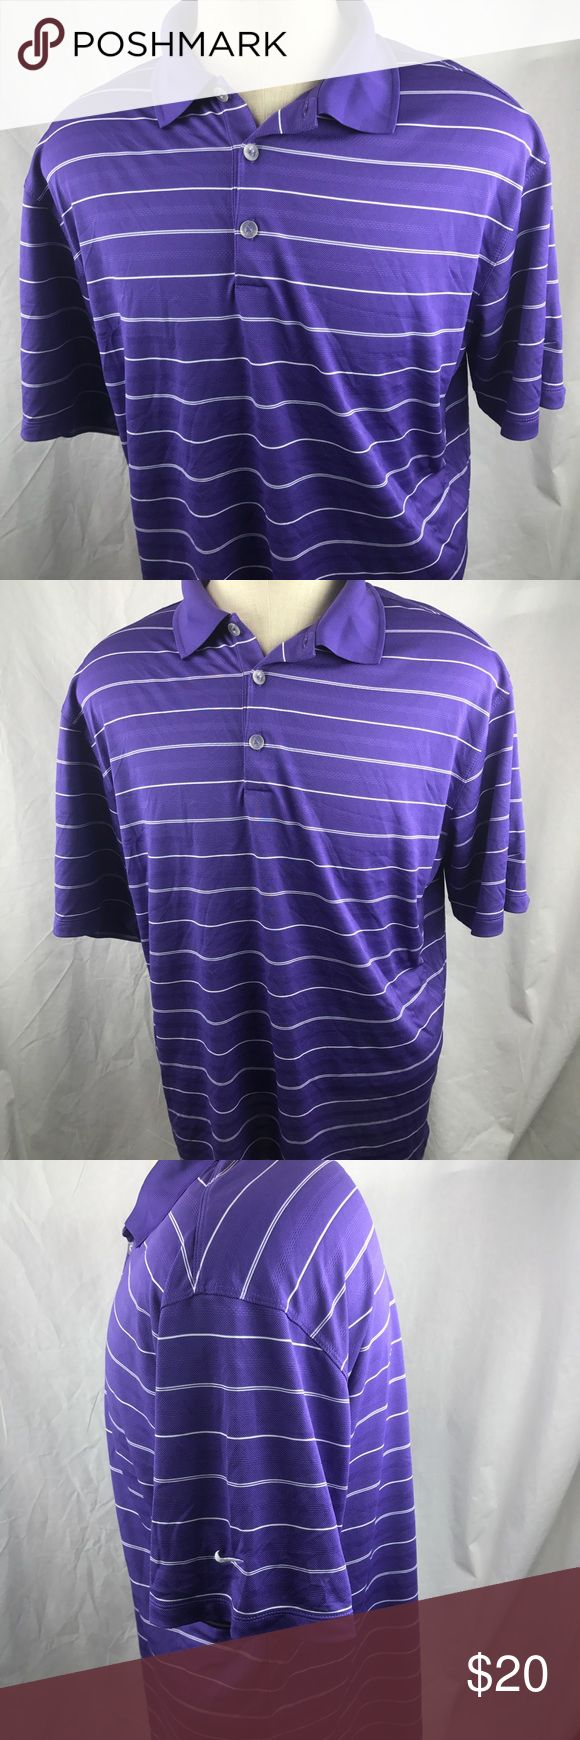 "Nike Golf polo shirt large Dri Fit purple striped Nike Golf Polo Shirt in very good condition with no stains or flaws.      Chest:  22""  Length:  28""    Thanks for looking!     e Nike Shirts Polos"